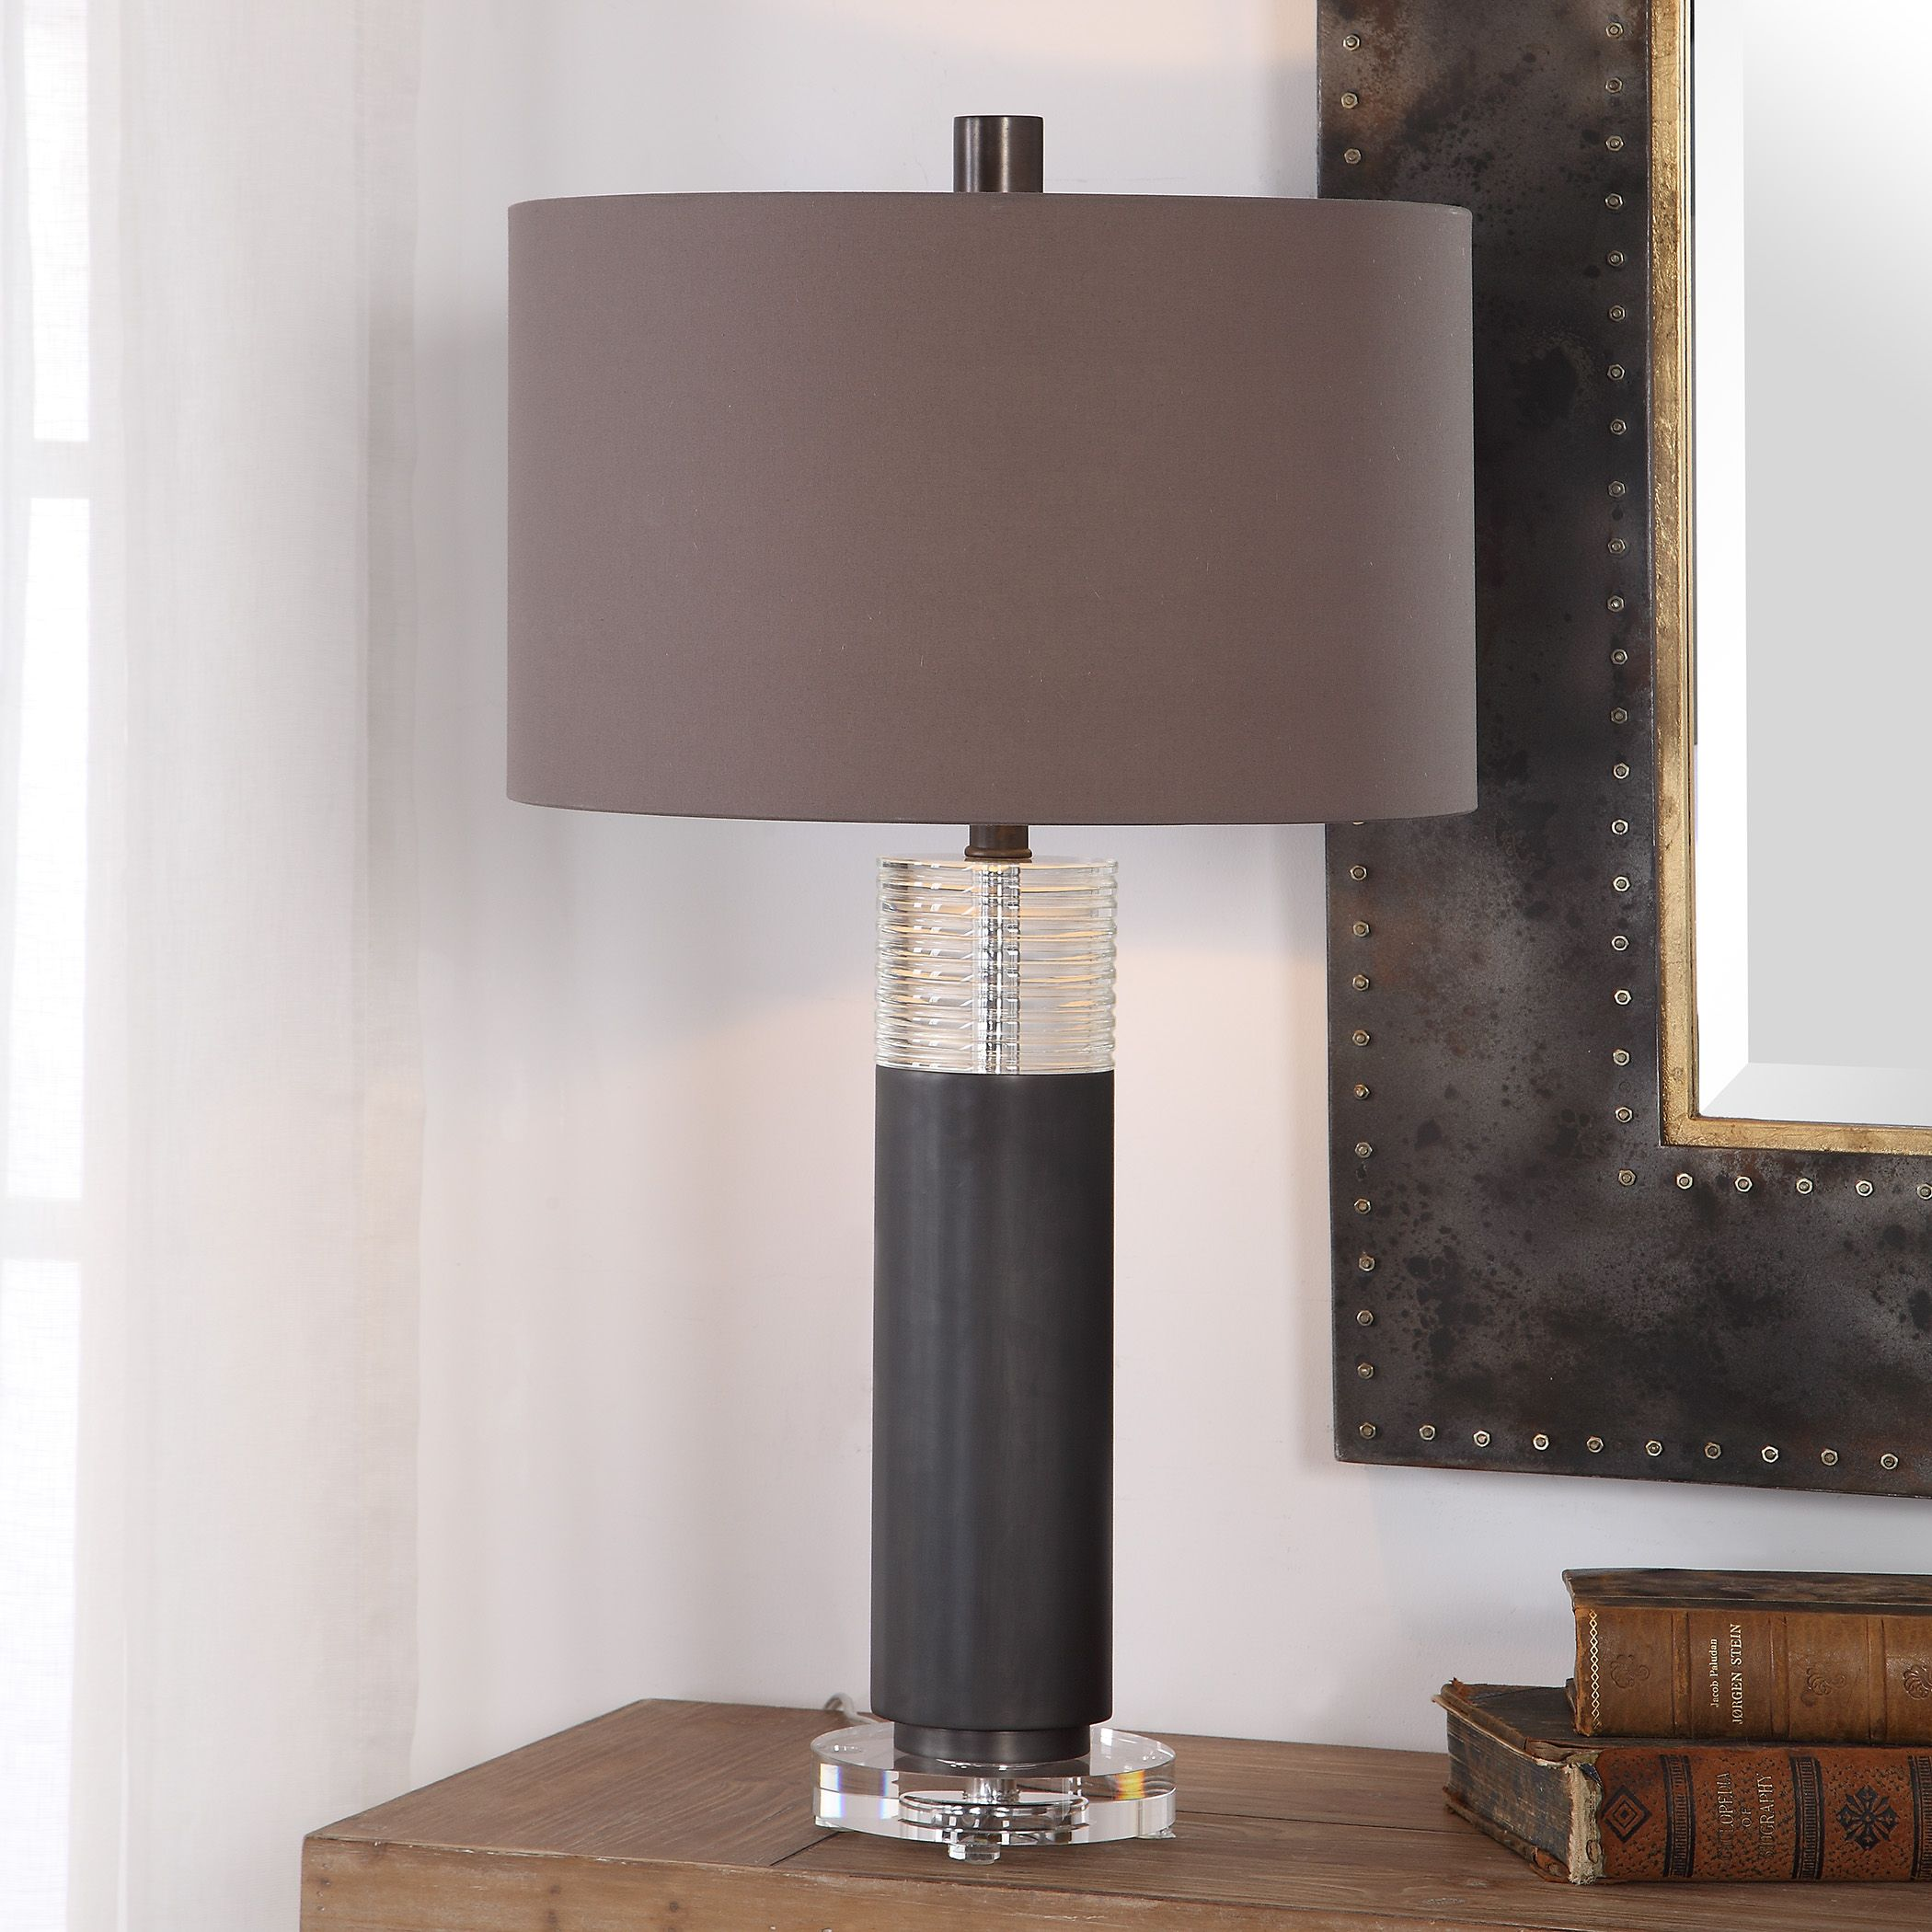 Details about Contemporary Metal & Glass Table Lamp Living Room Bedroom  Dining Lighting Modern